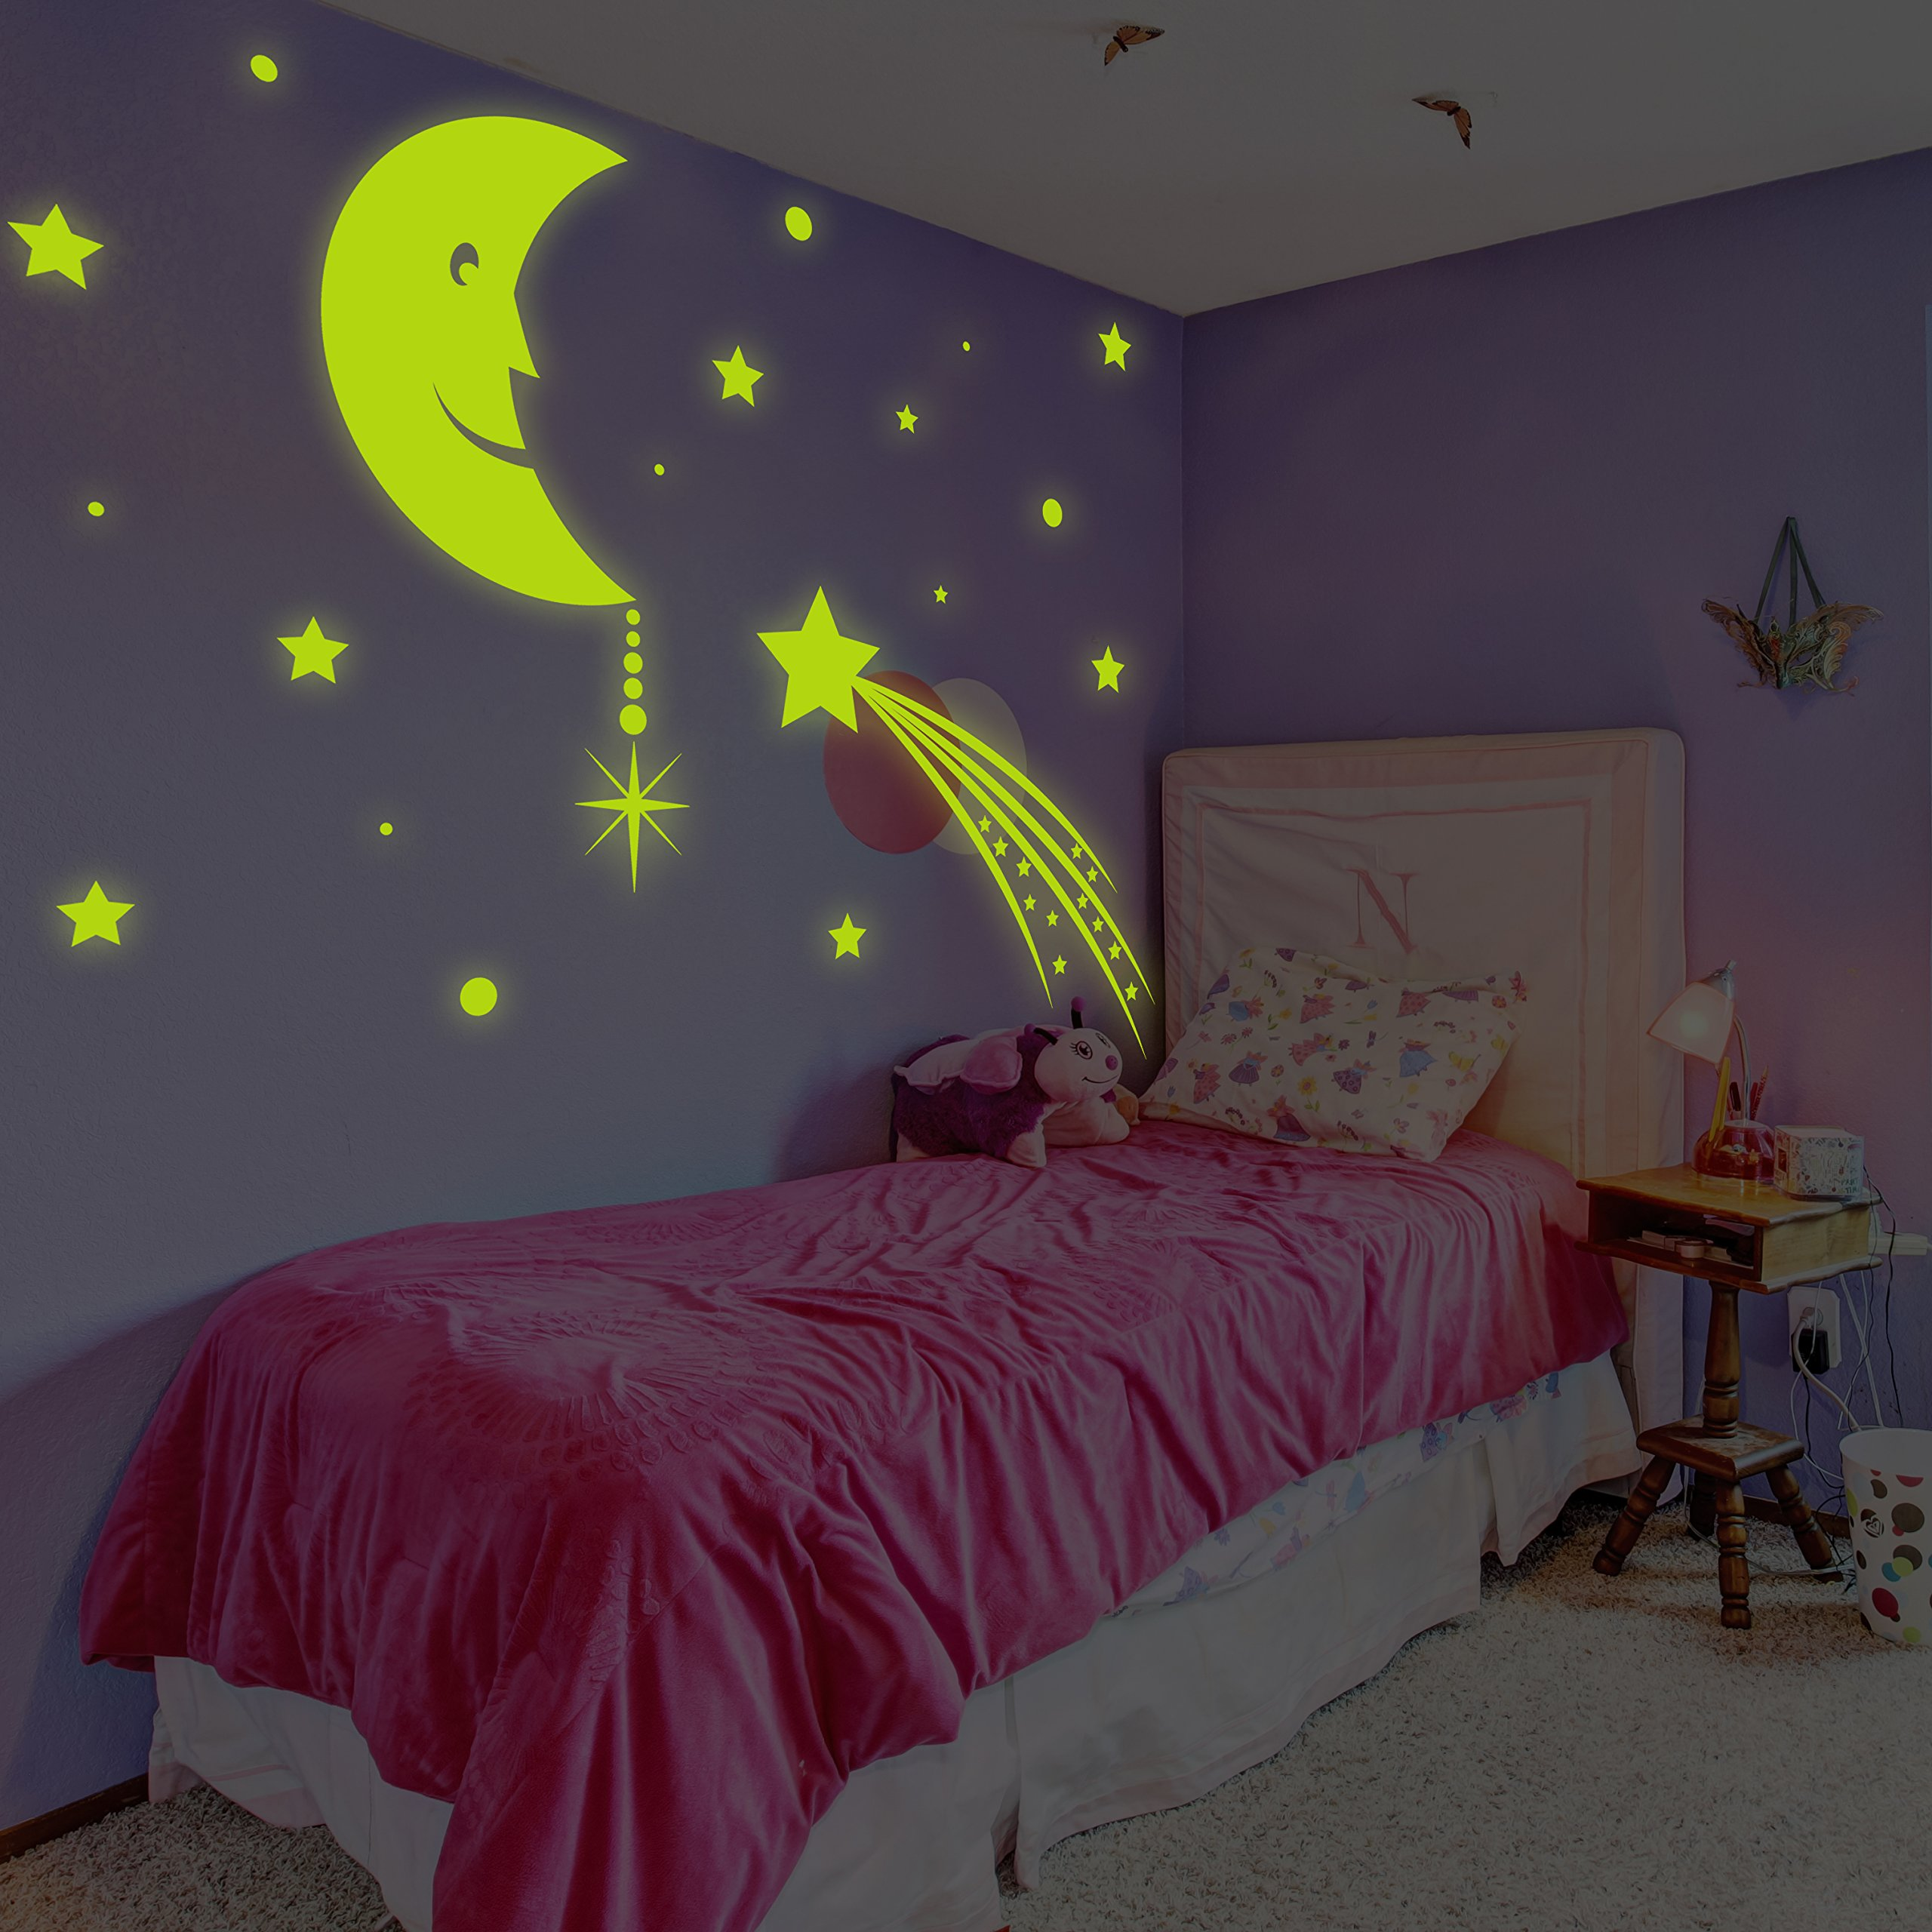 ( 71'' x 53'' ) Glowing Vinyl Wall Decal Moon with Stars Sky / Glow in the Dark Decor Sticker / Сrescent Luminescent Mural Kids, Baby Room + Free Decal Gift